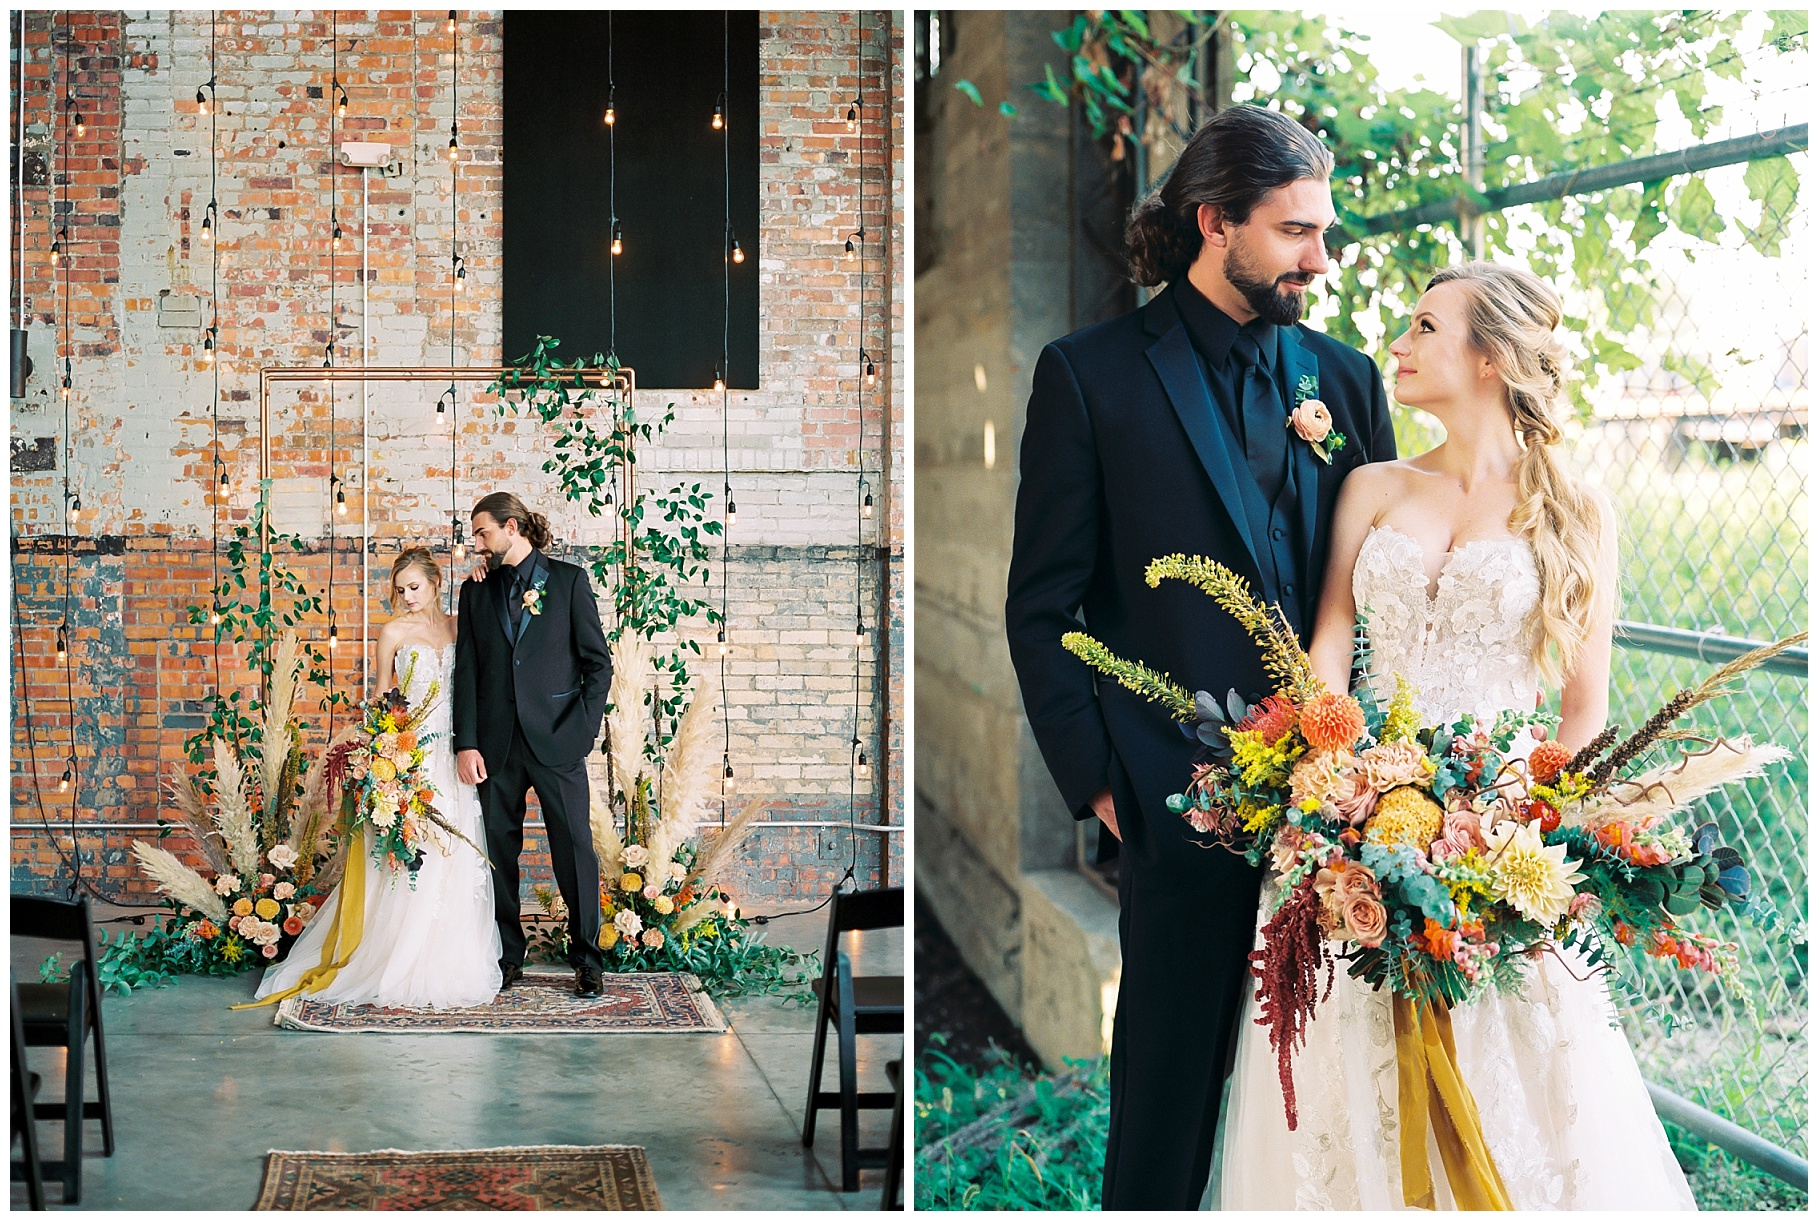 Urban Romance Wedding with Copper Accents at The Millbottom by Kelsi Kliethermes Photography Best Columbia Missouri Wedding Photographer_0064.jpg